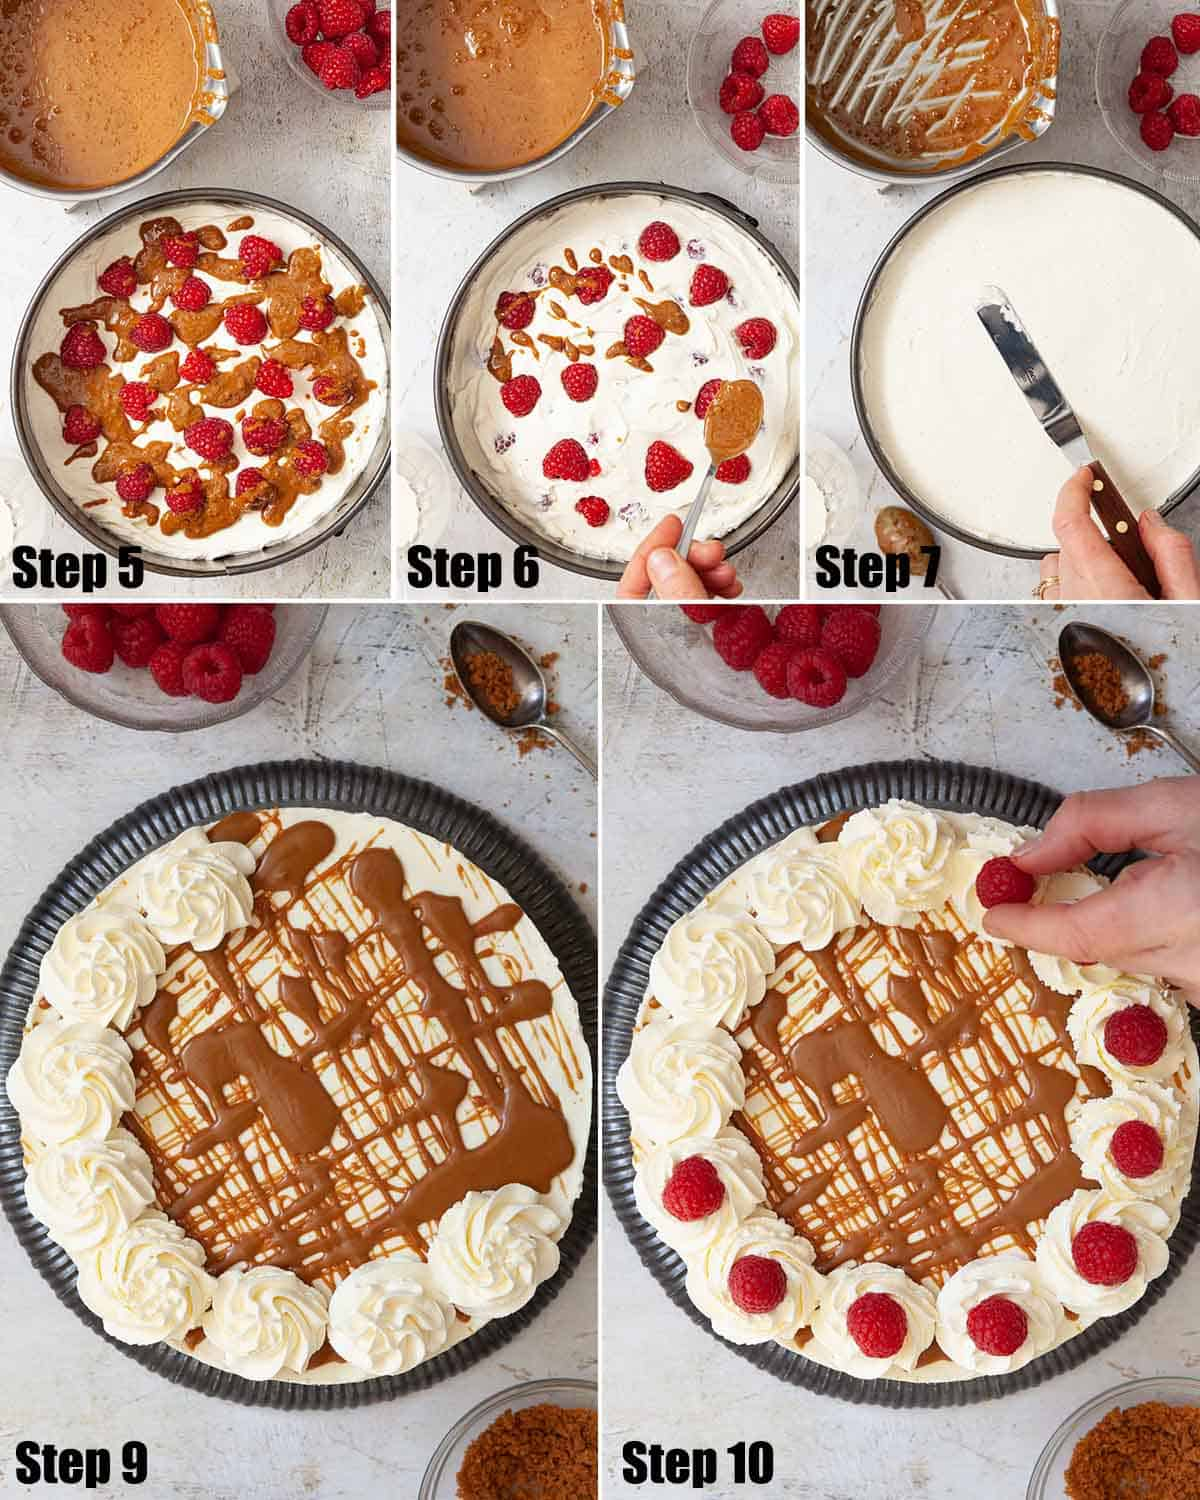 Collage of images showing a no-bake dessert being assembled and decorated